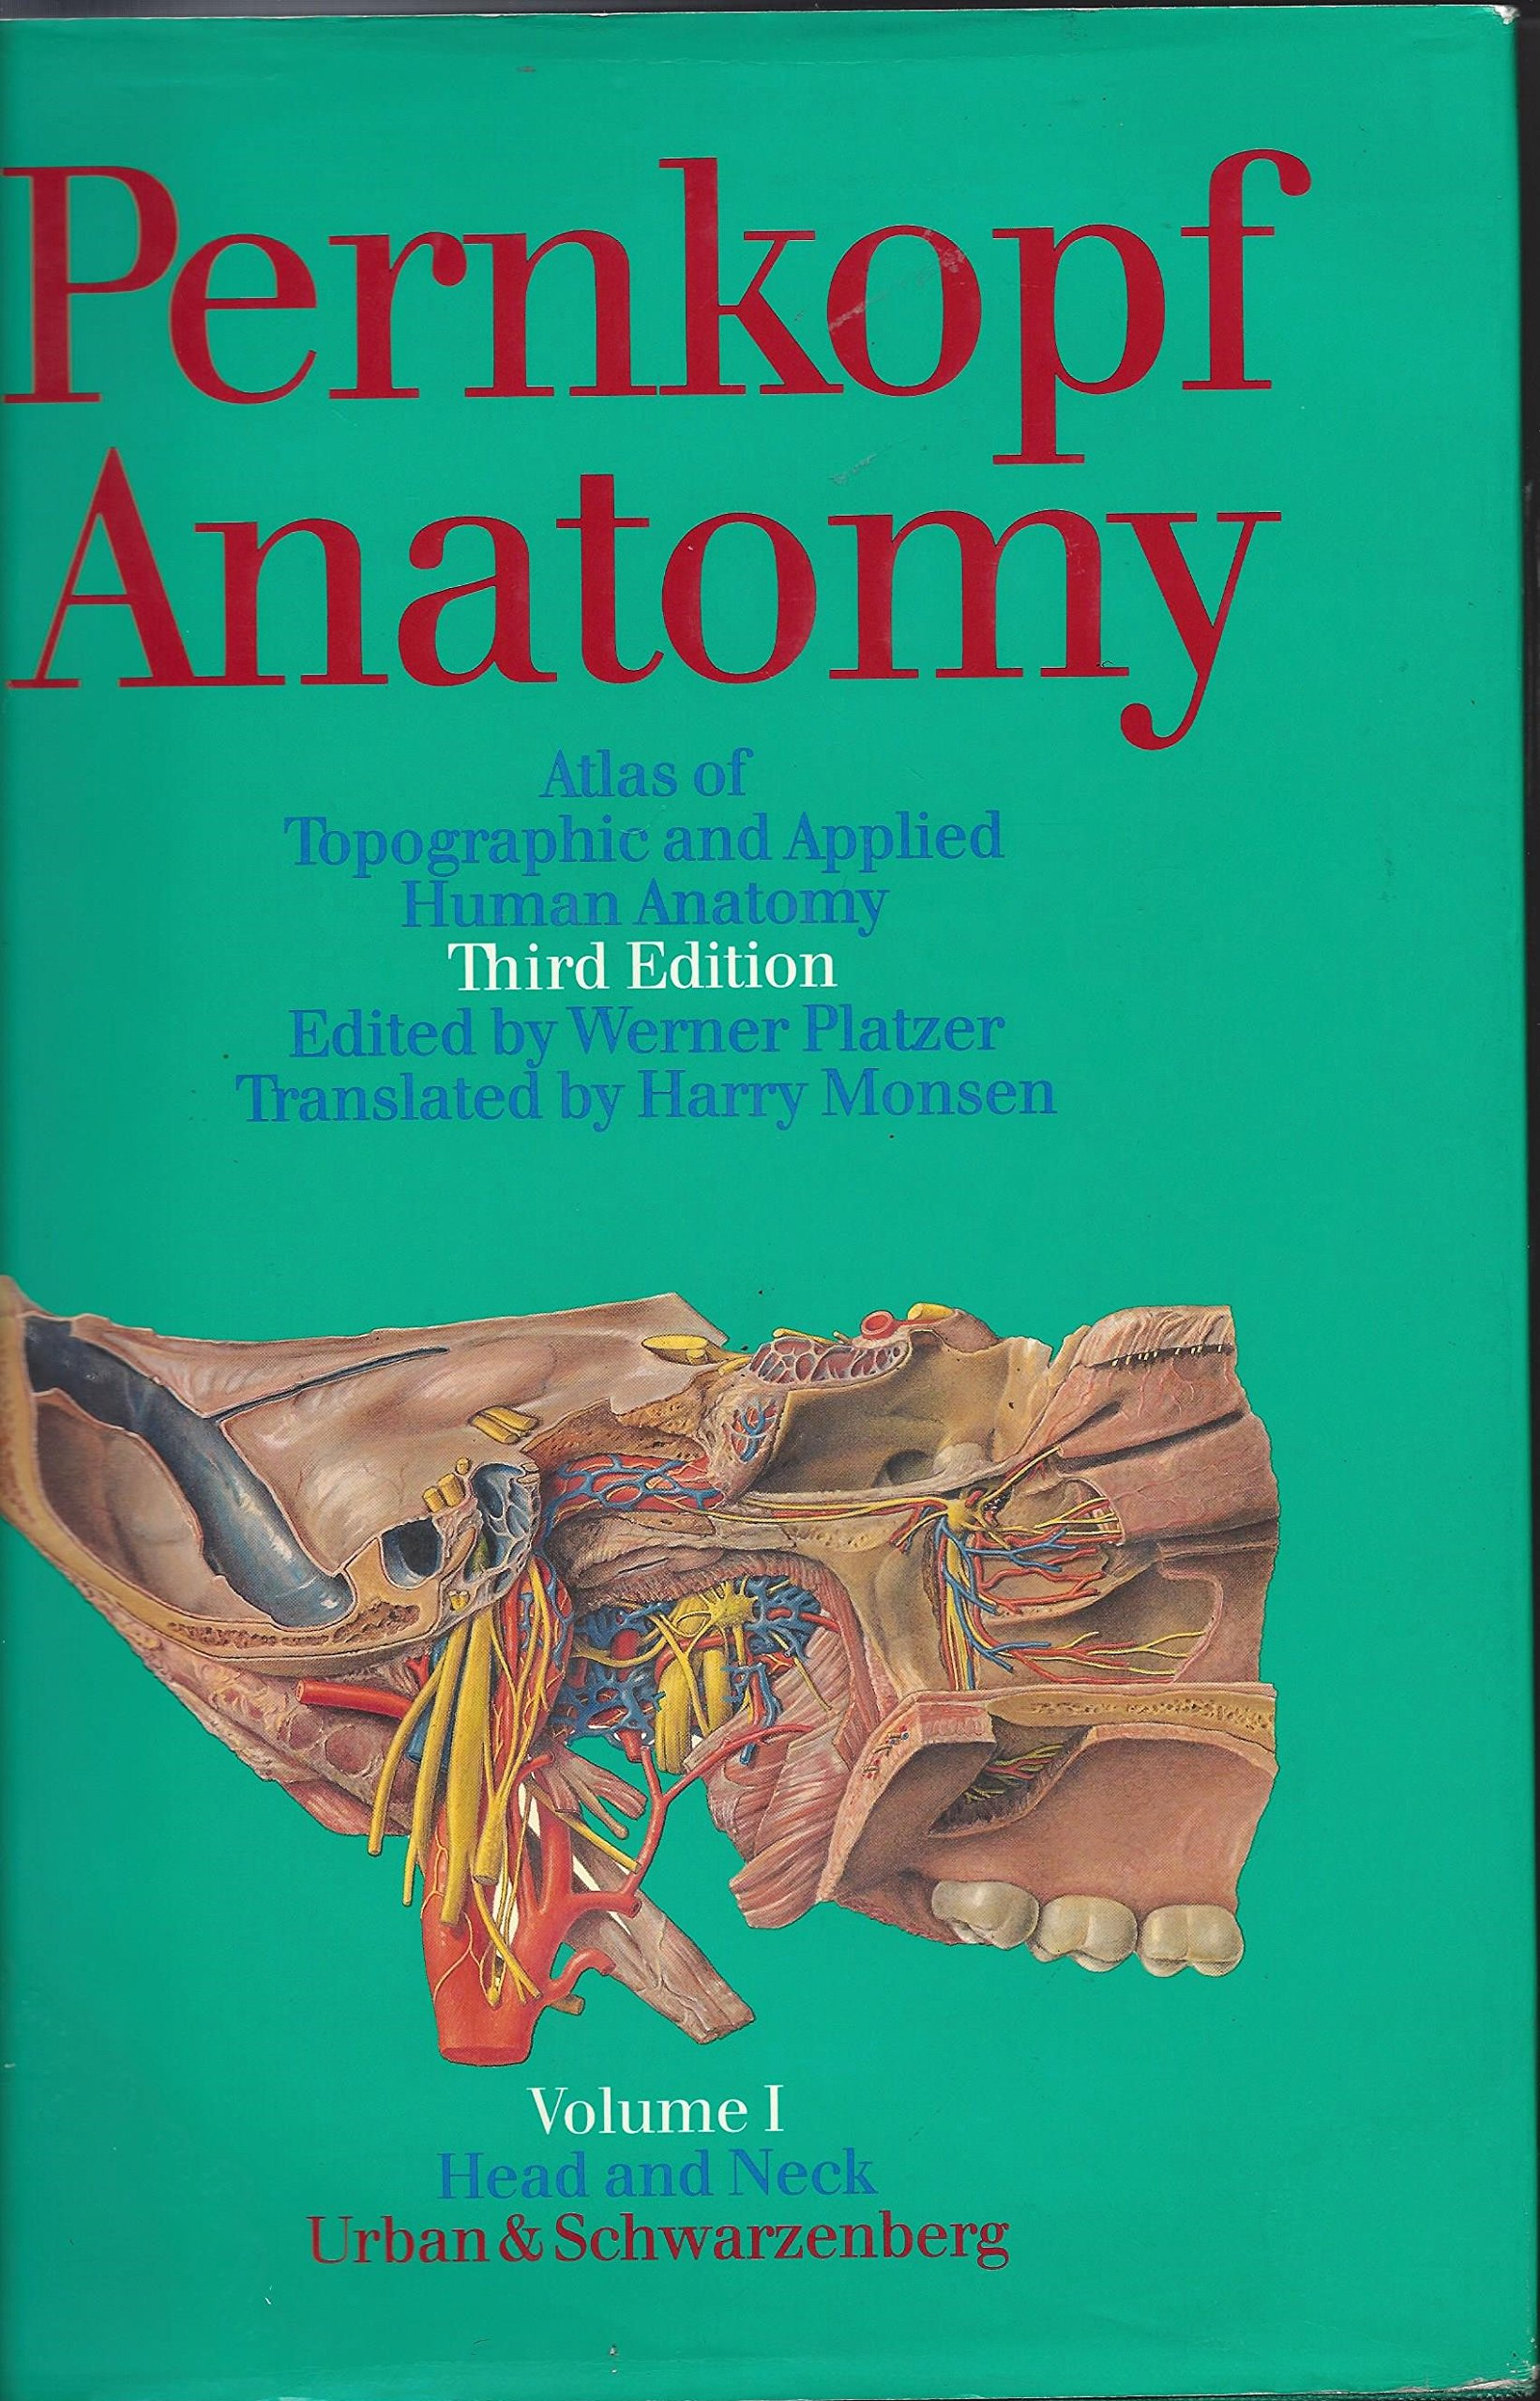 Pernkopf Anatomy: Atlas of Topographic and Applied Human Anatomy ...